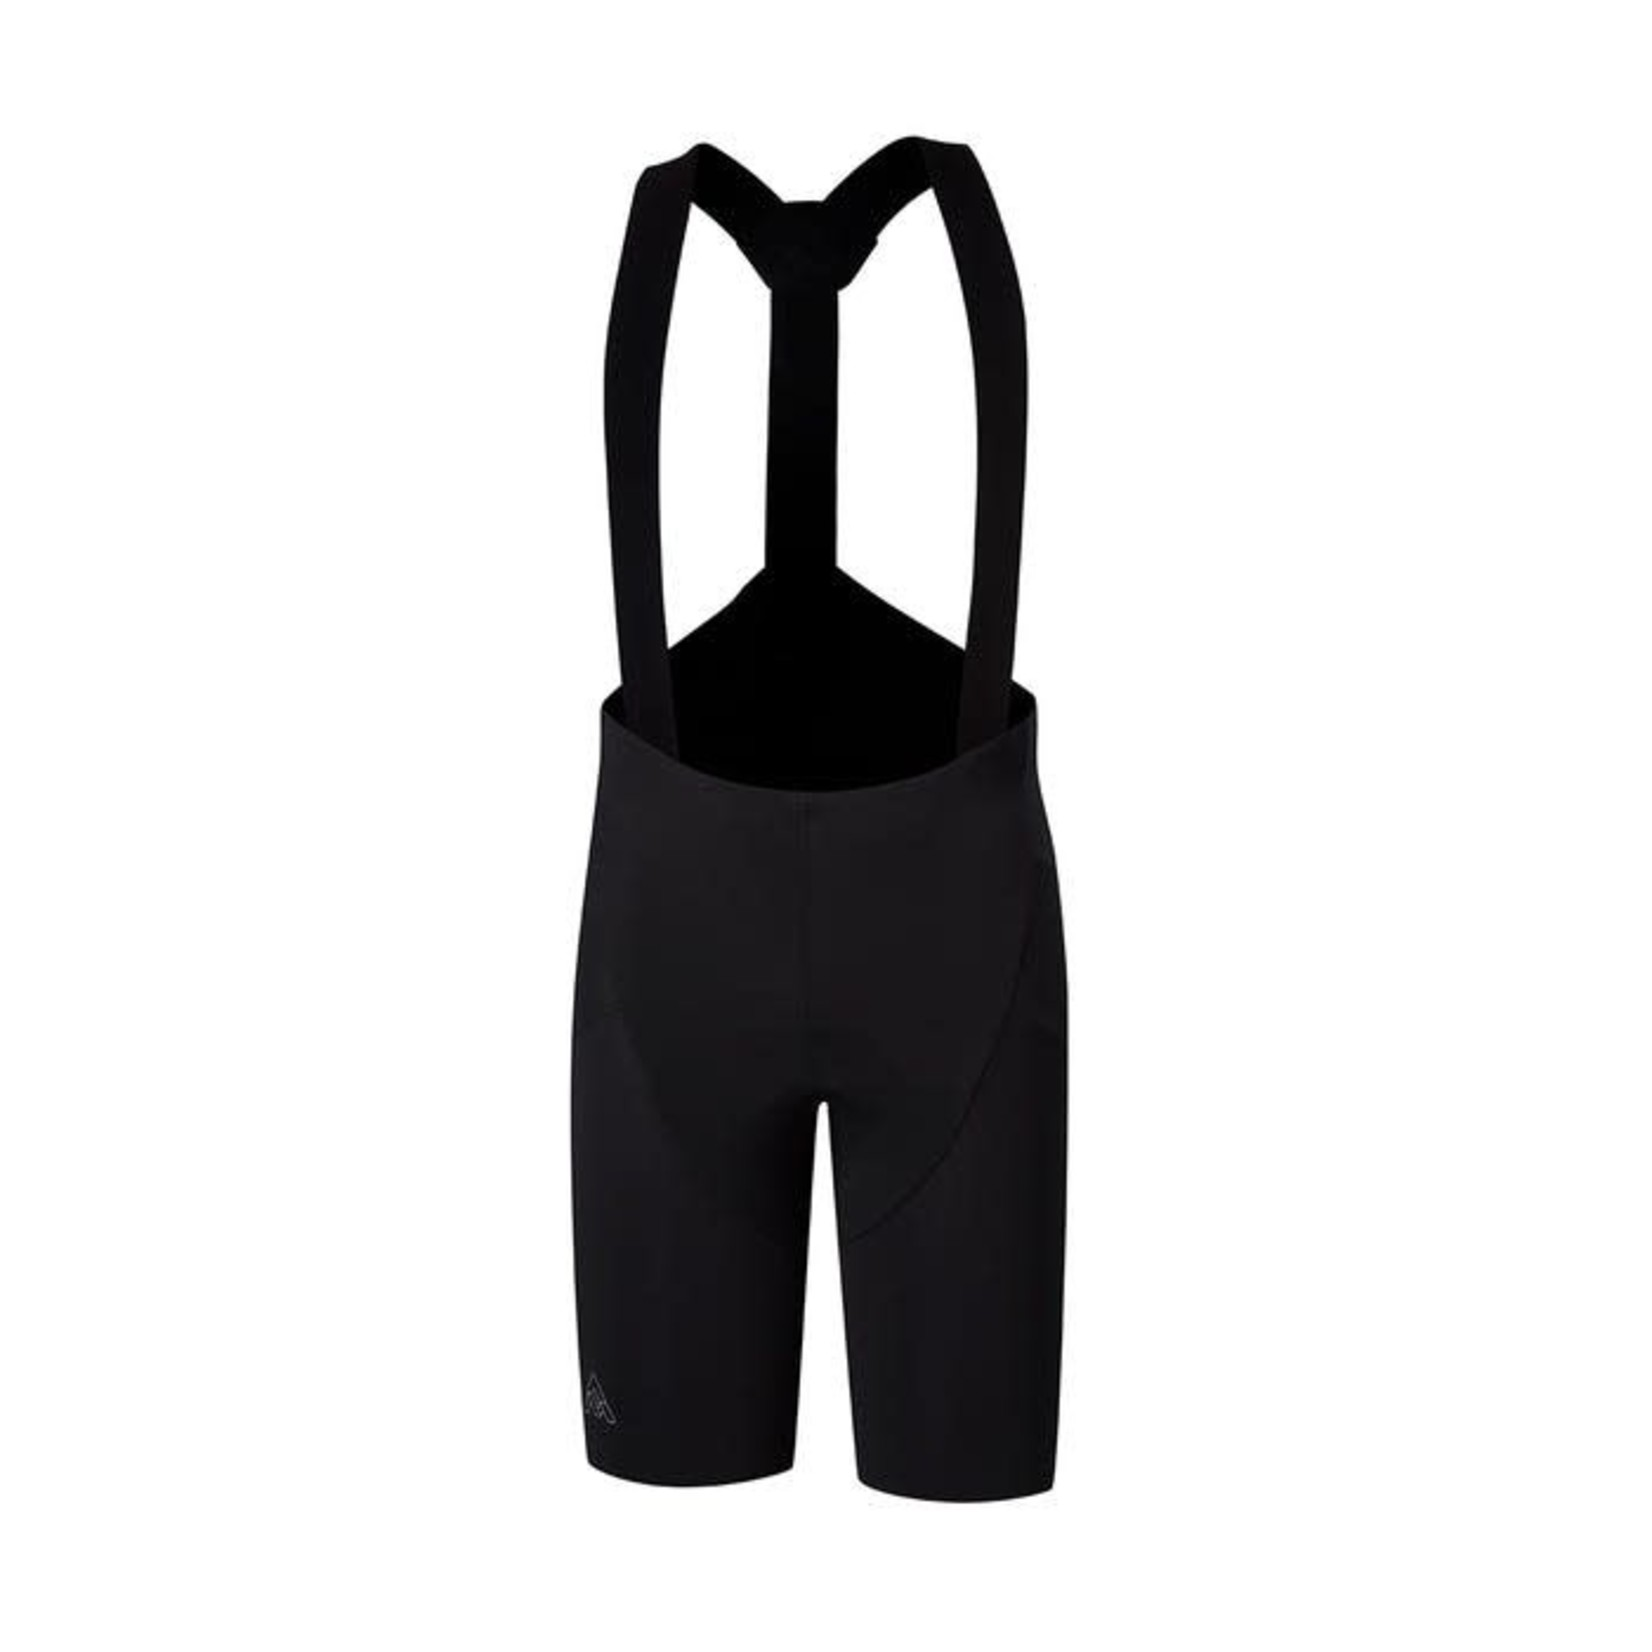 7Mesh 7Mesh MK3 Bib Short Men's